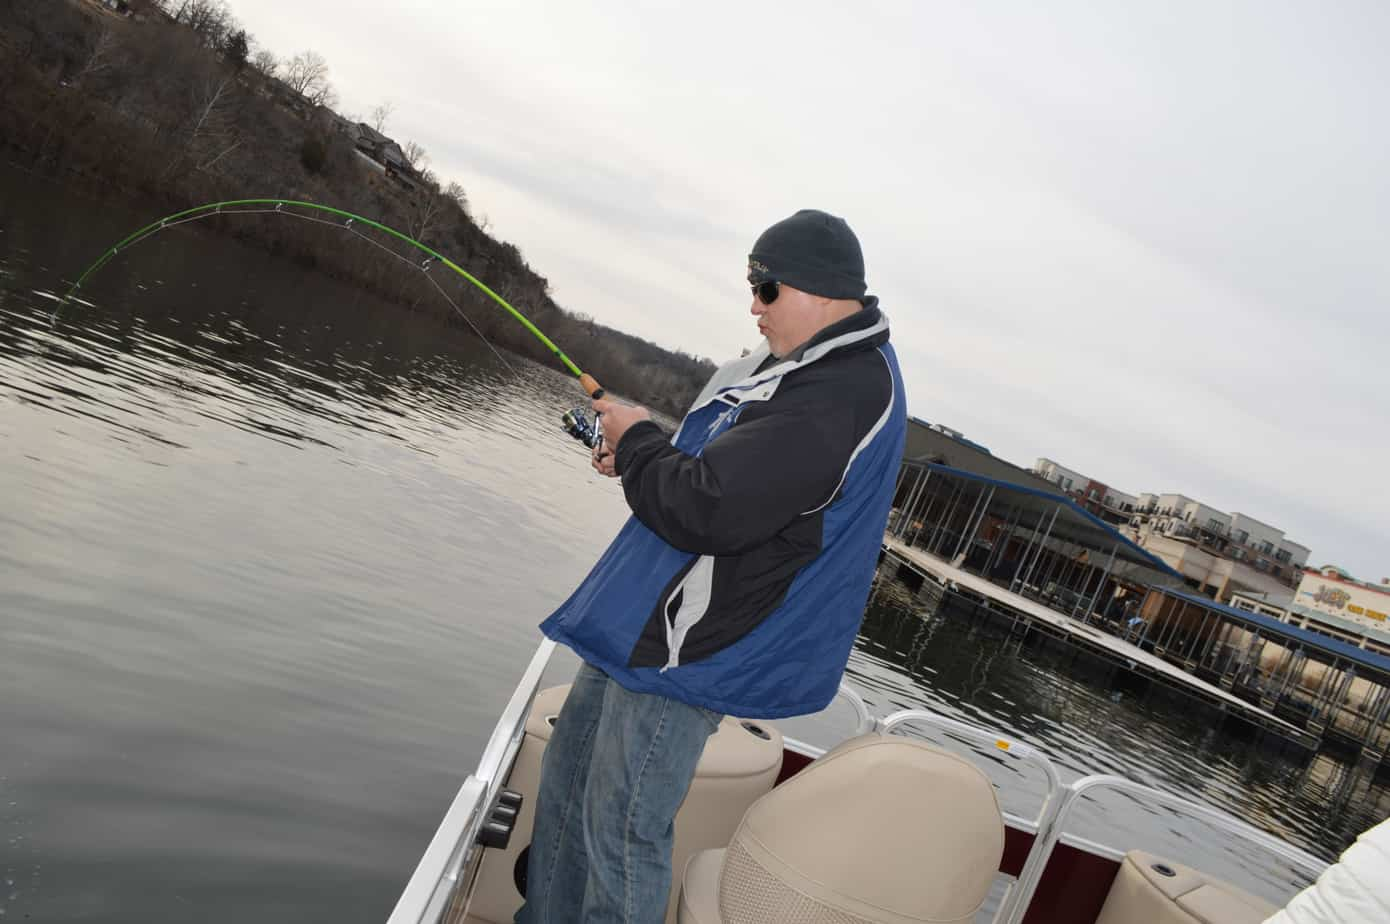 Dsc 0003 branson fishing guide service for Branson fishing guide